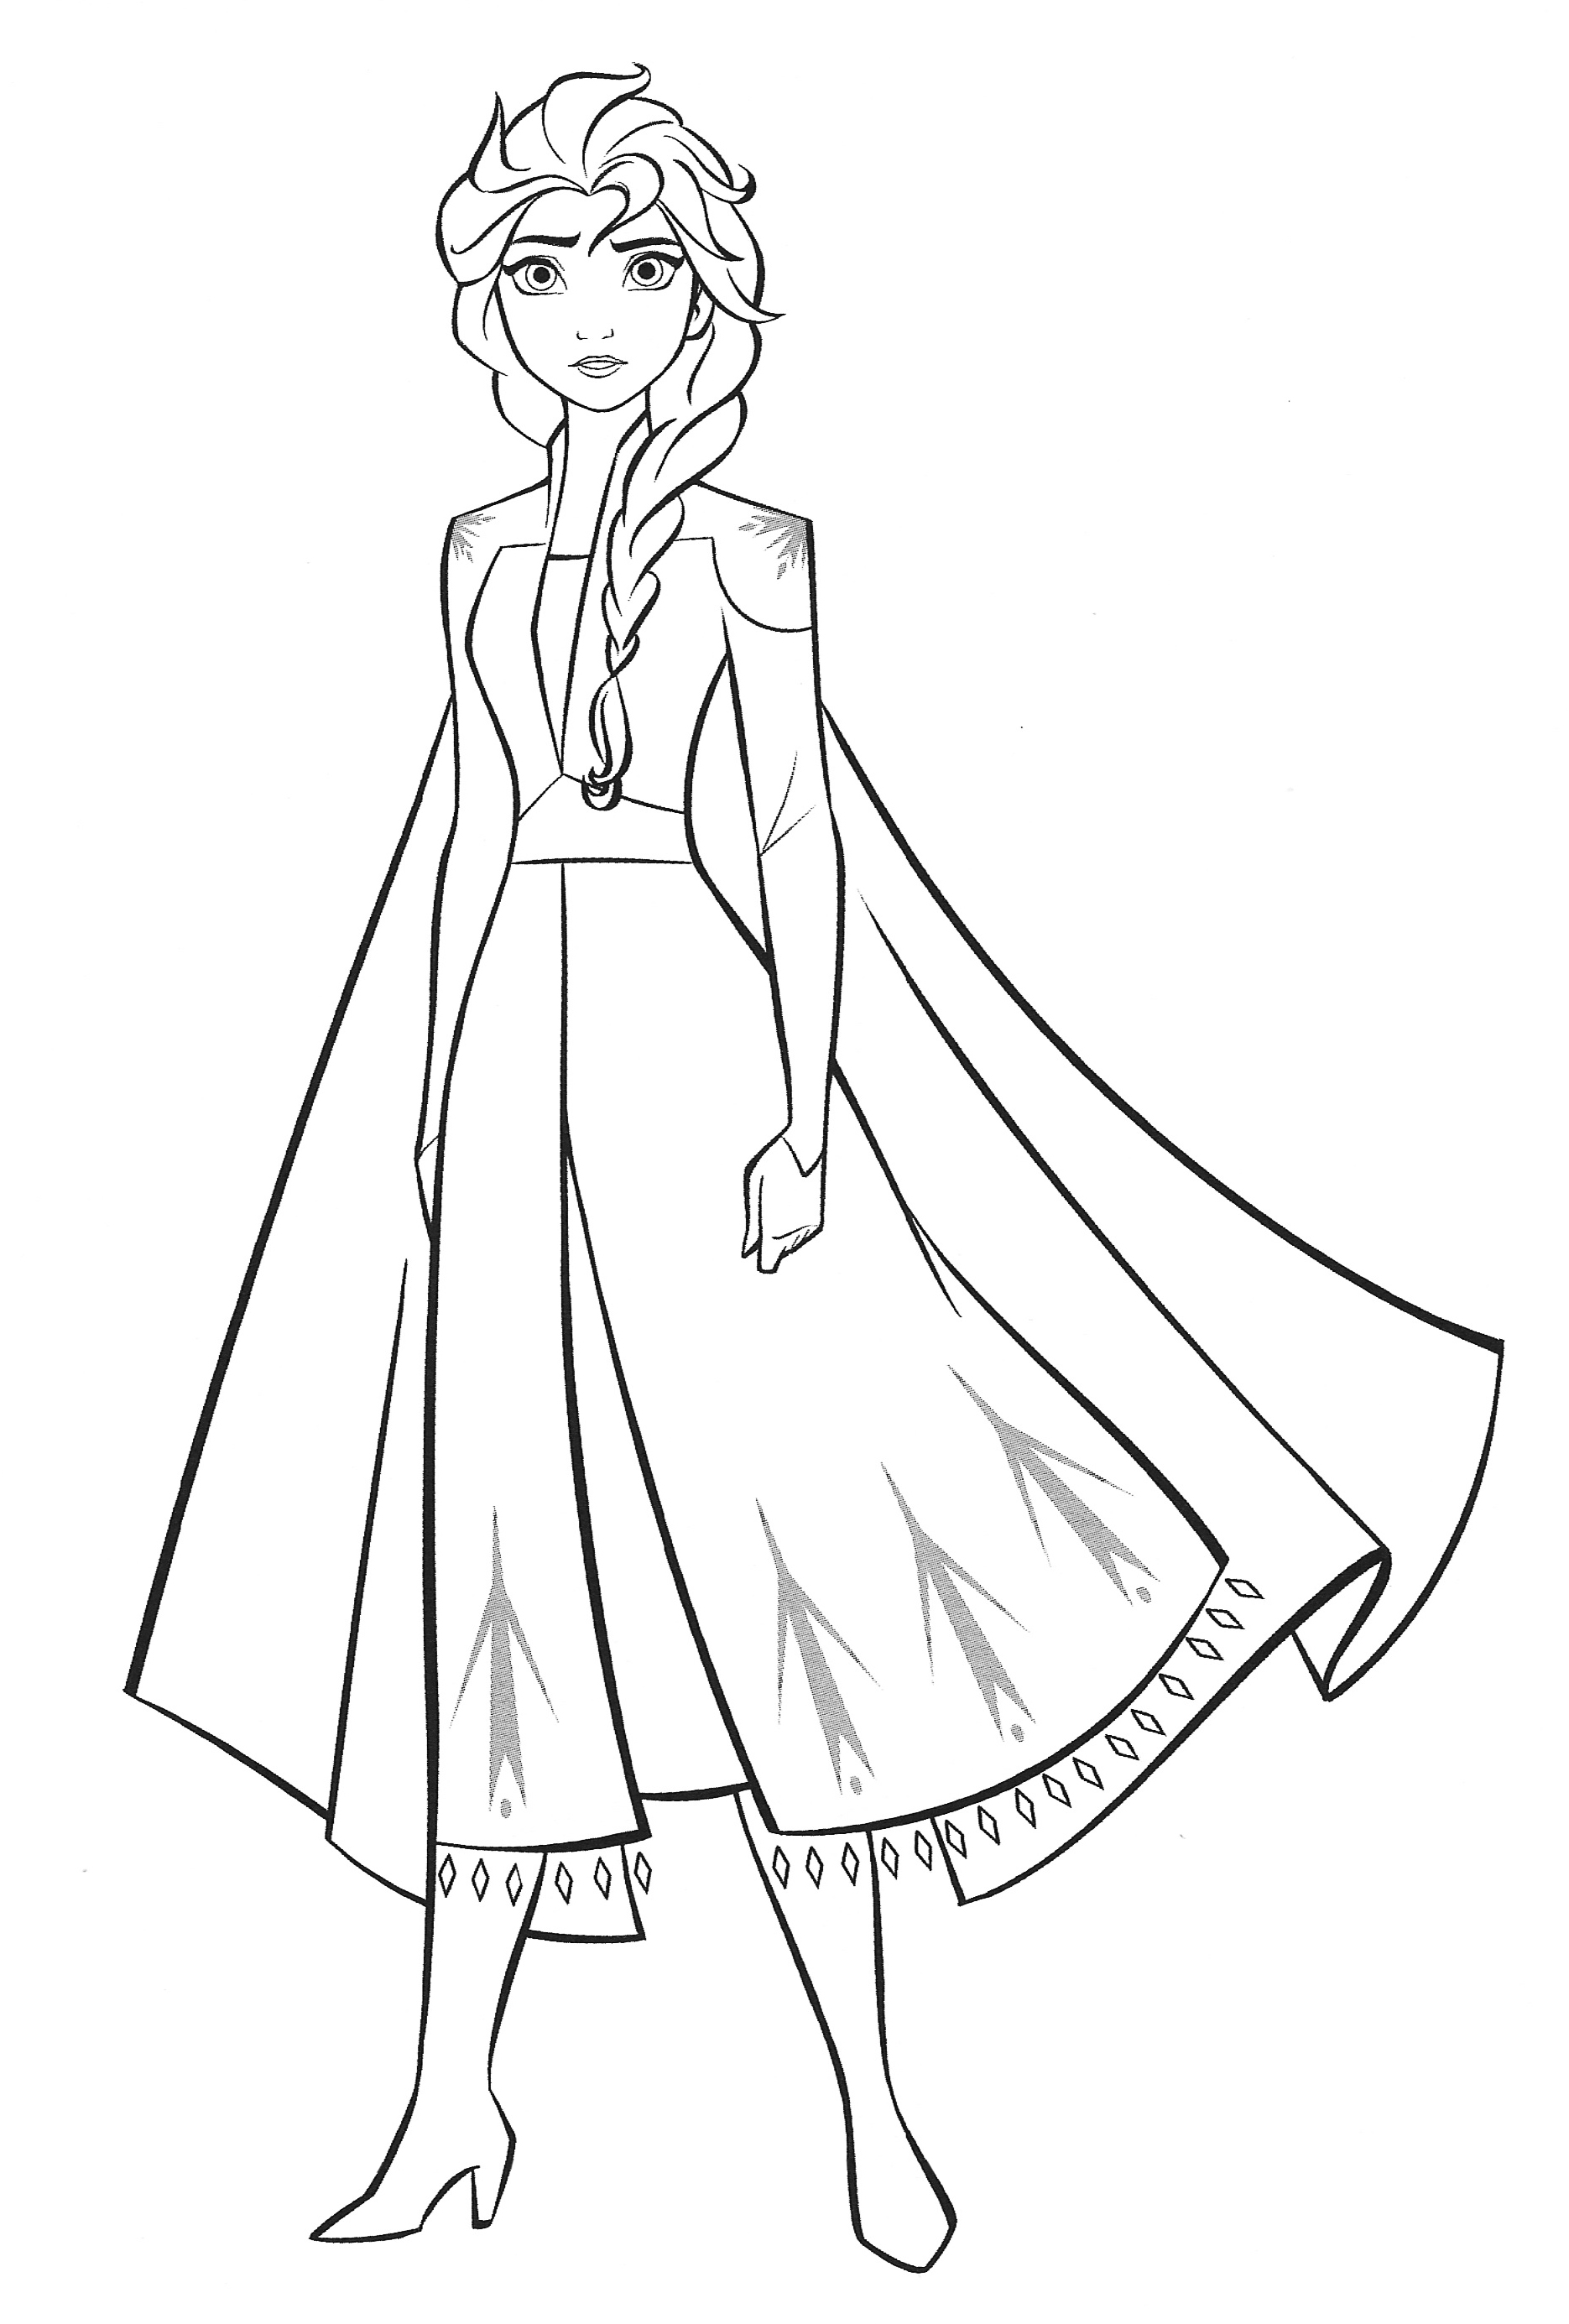 New Frozen 18 coloring pages with Elsa   YouLoveIt.com